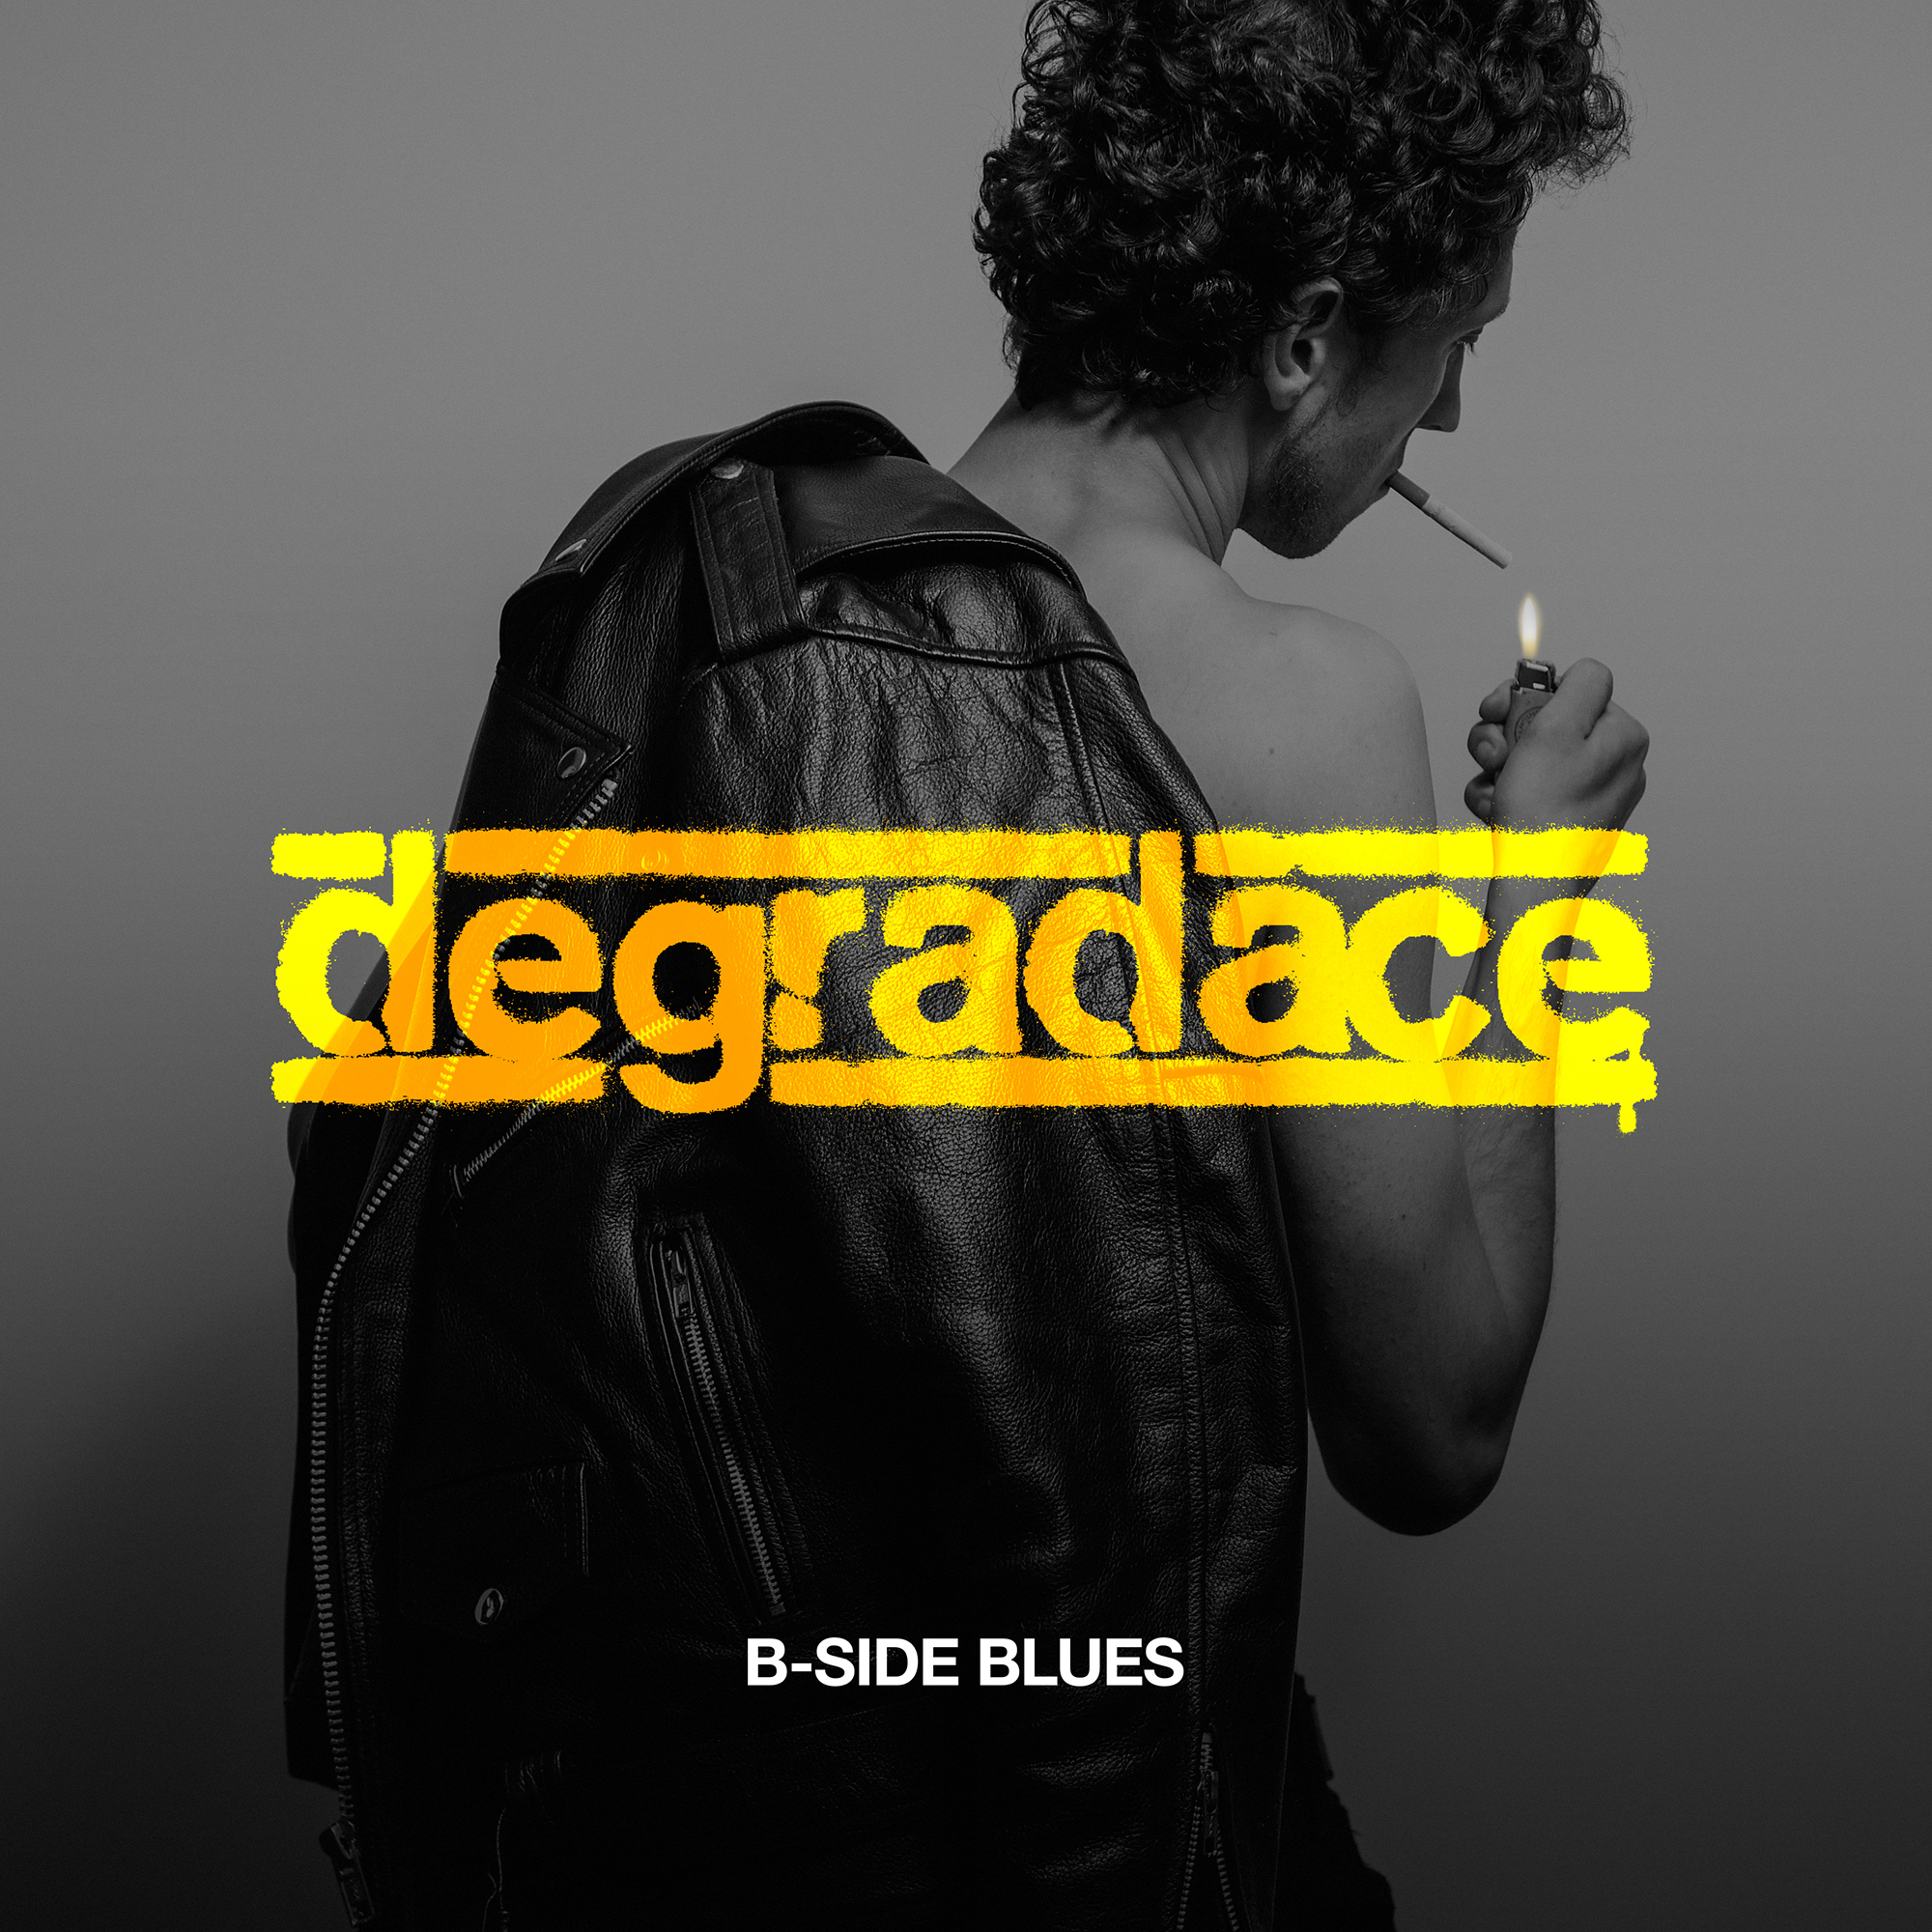 Degradace-b-side_blues-lp-cover-front-rgb-2000px